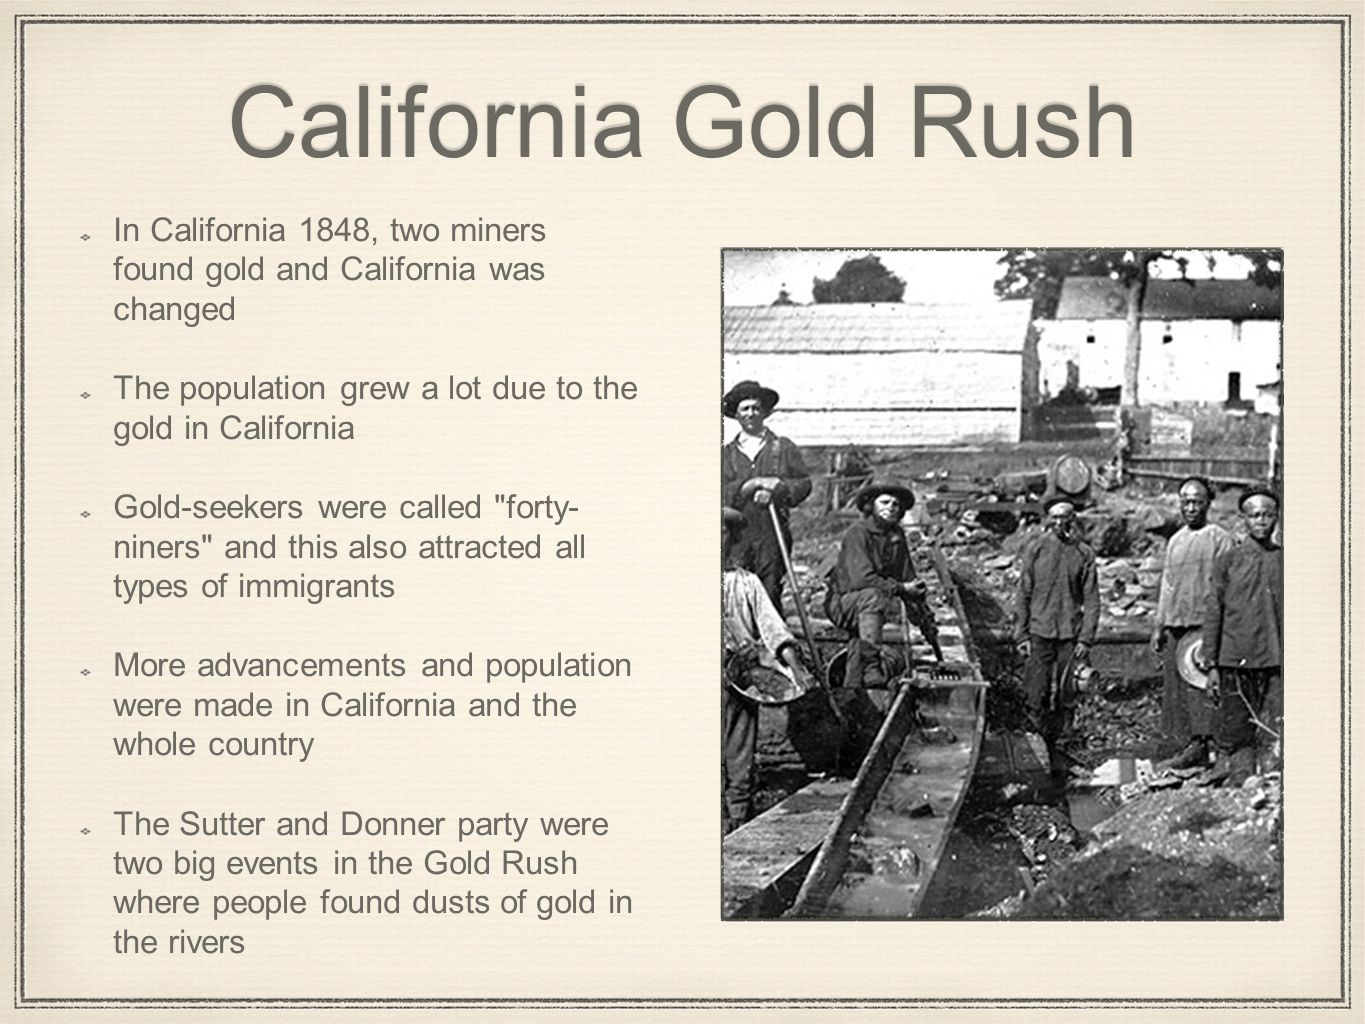 a history of the california gold rush event of 1848 30012009 the california gold rush 1848  american history, california history,  is homage to the seminal event in california's history.